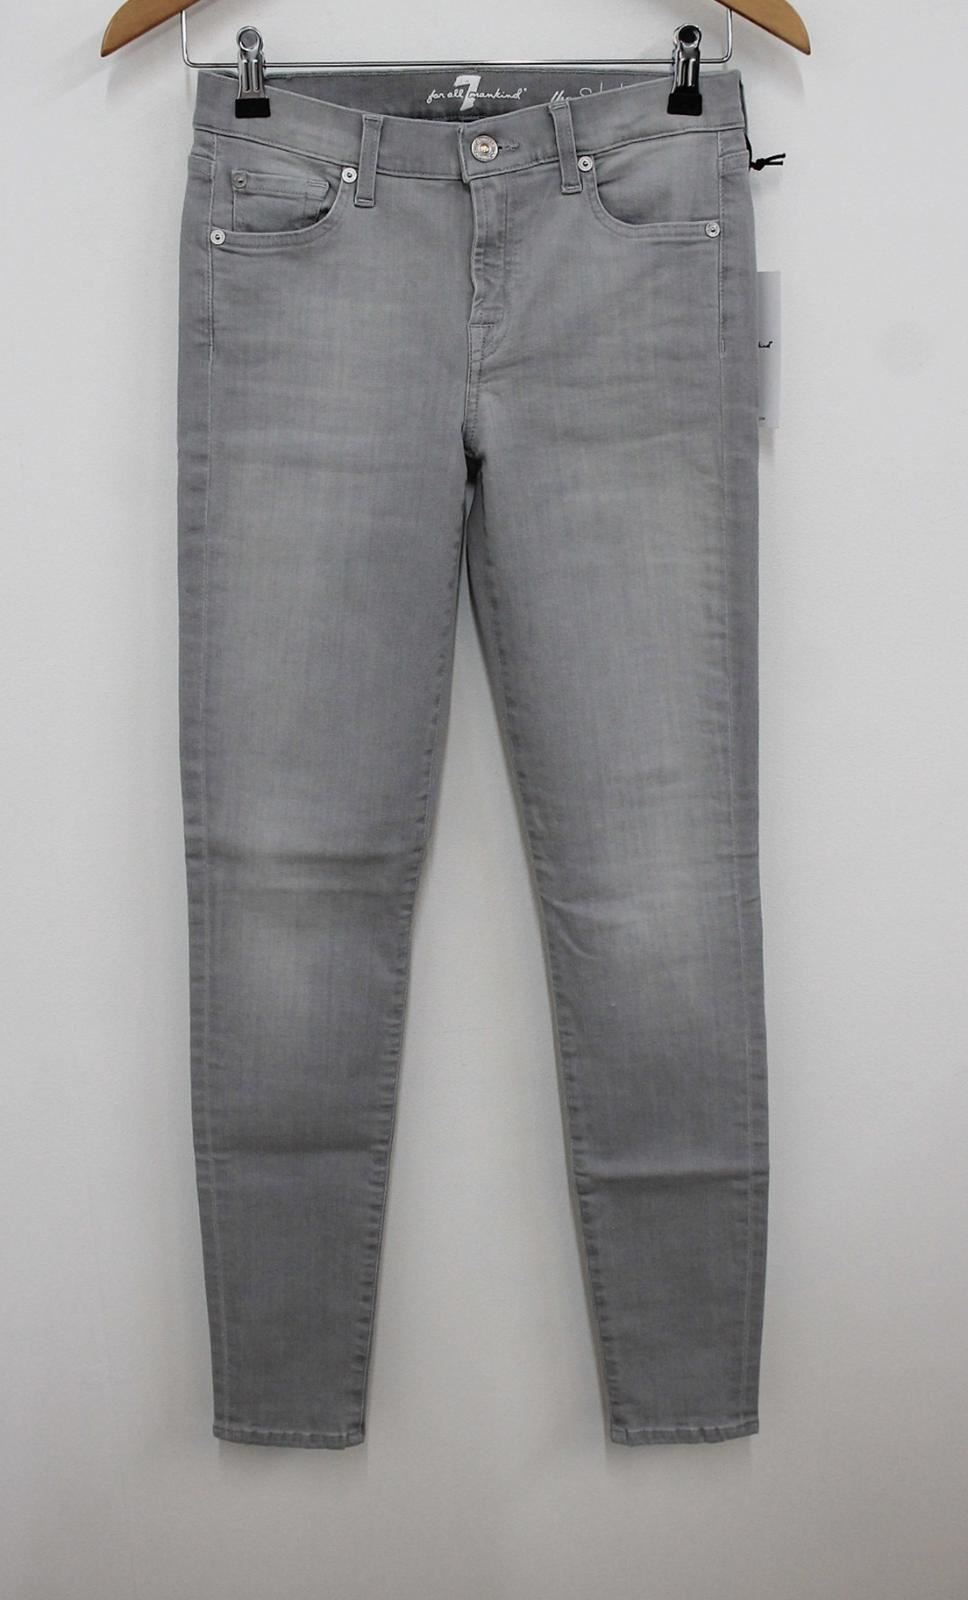 7 Pour All Mankind Femme Illusion Mirage Gris The Skinny Jeans W27 L30 Bnwt